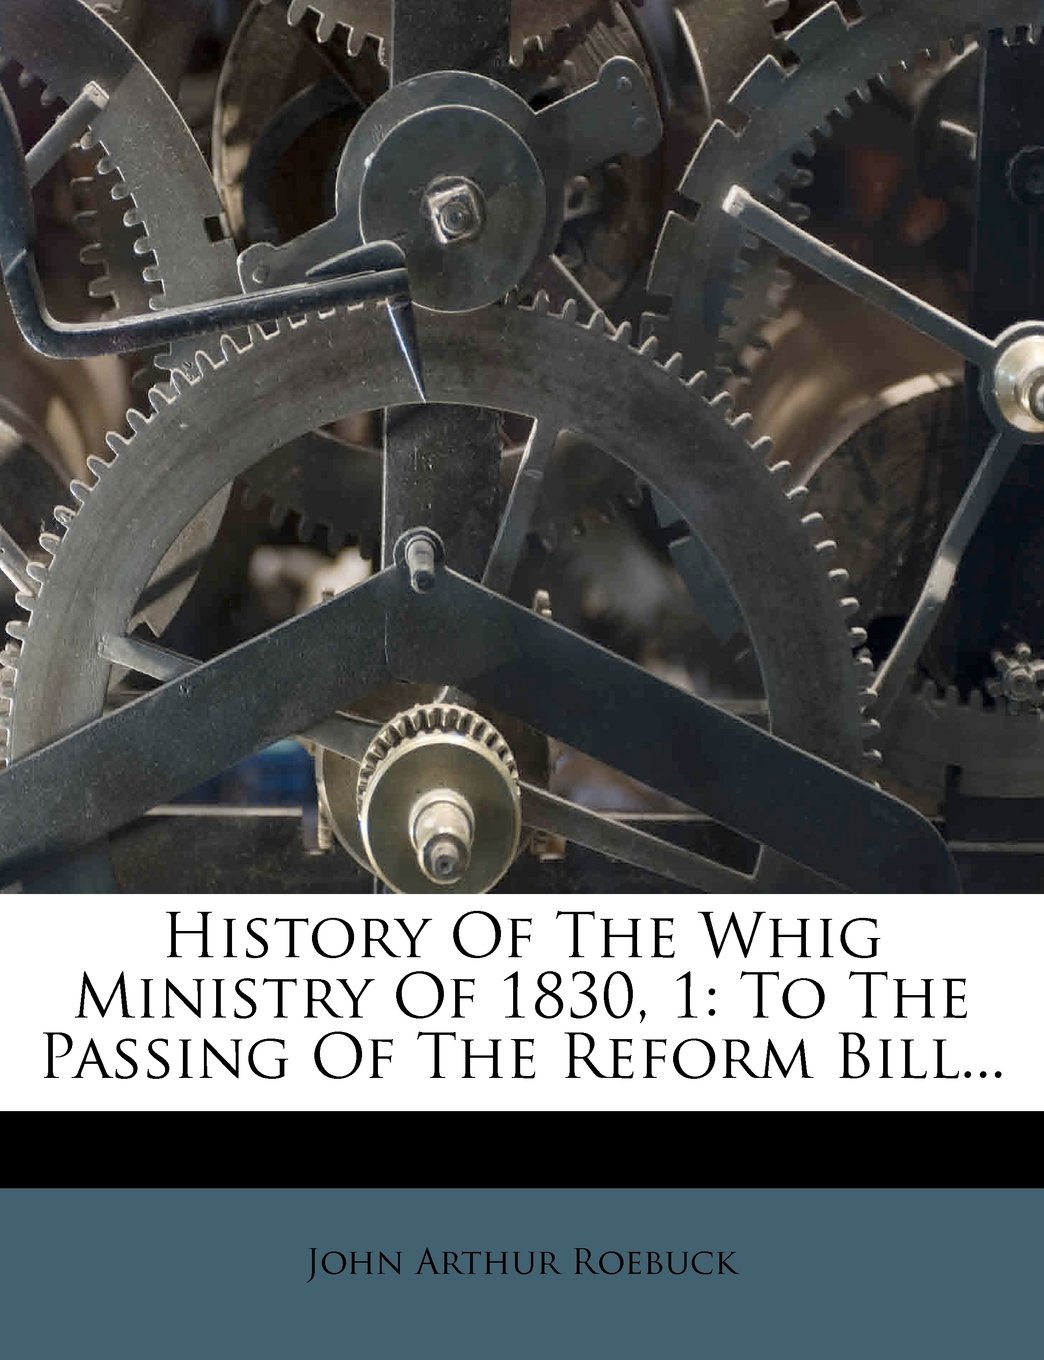 History Of The Whig Ministry Of 1830, 1: To The Passing Of The Reform Bill... pdf